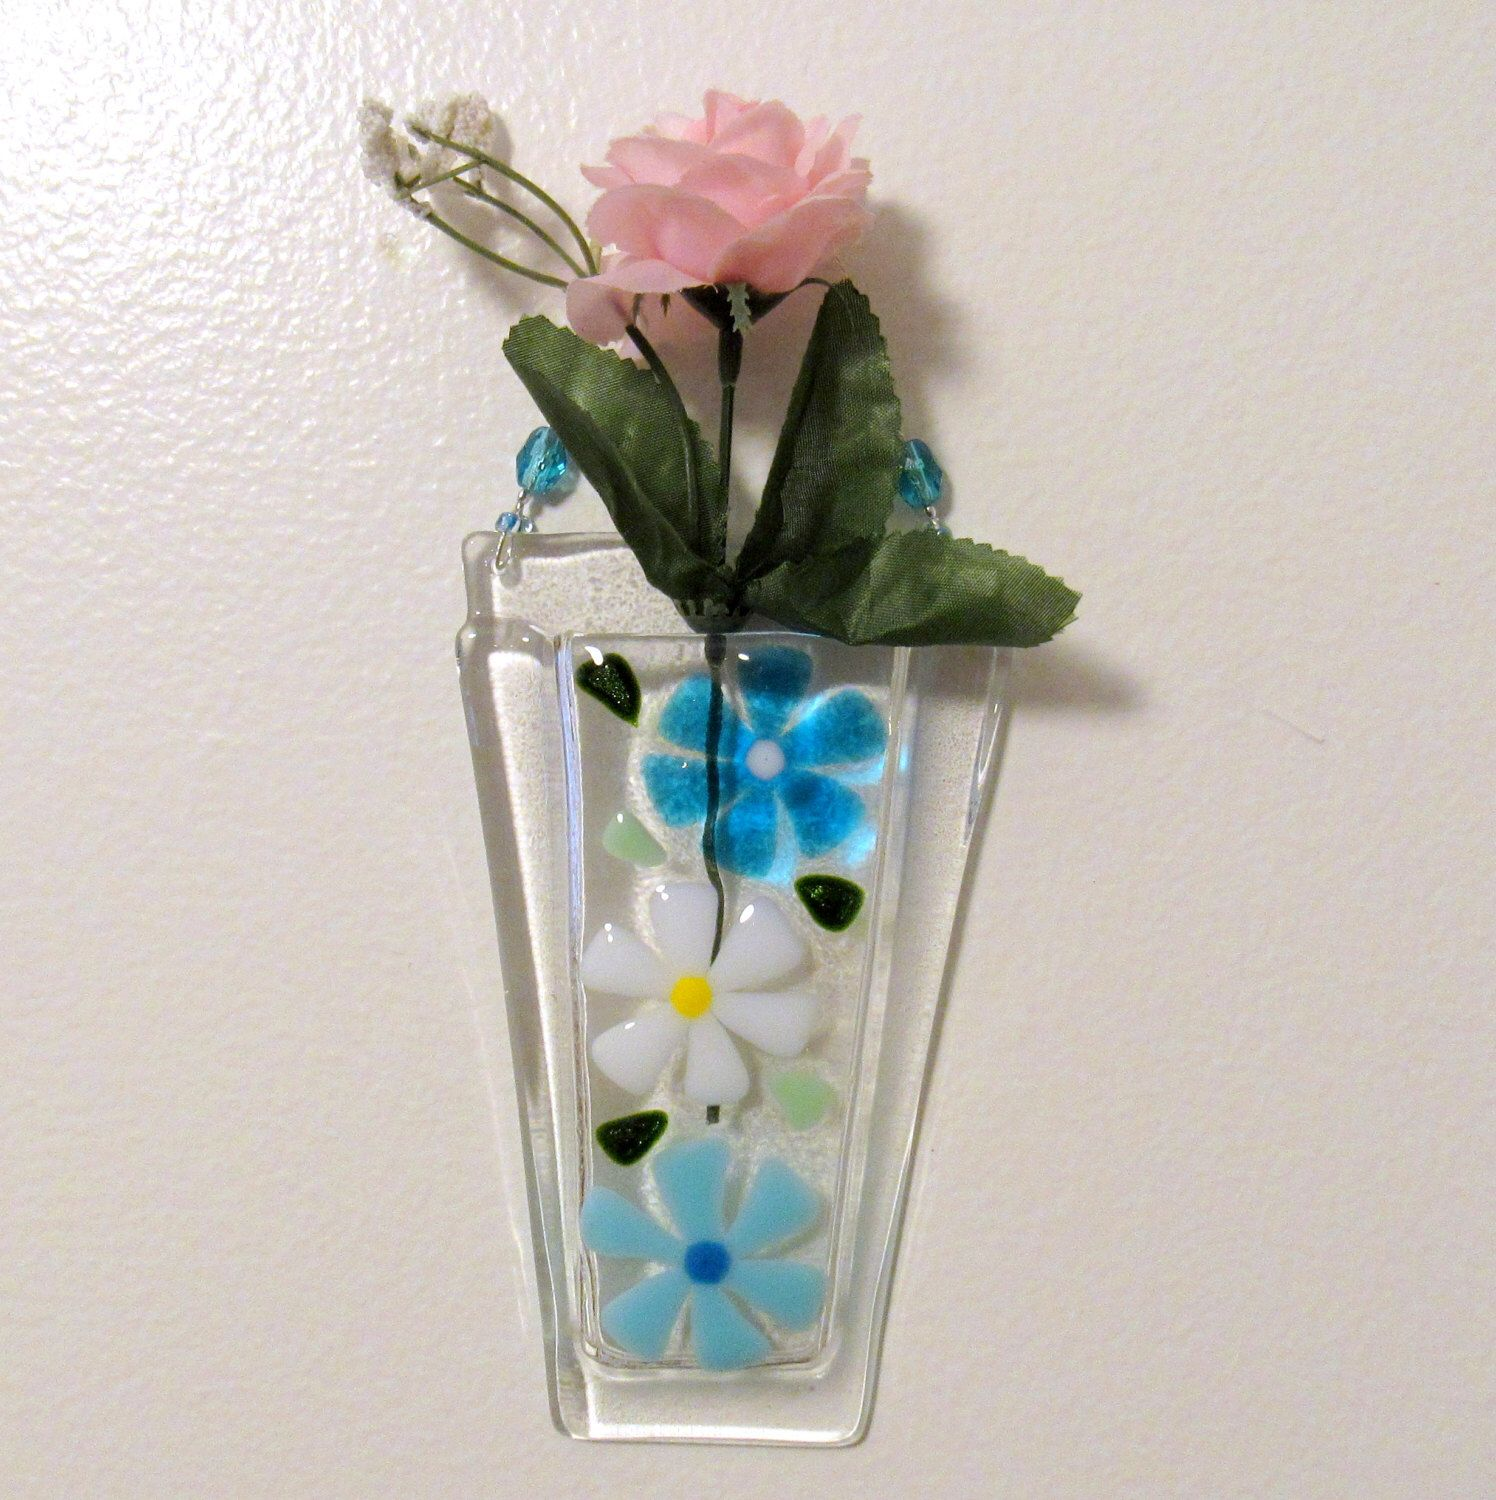 Fused Glass Wall Vase Flower Vase Wall Hanging Pocket Turquoise And White Flowers Mothers Day Gift Glass Daisies With Images Glass Flower Vases Glass Wall Vase Wall Vase